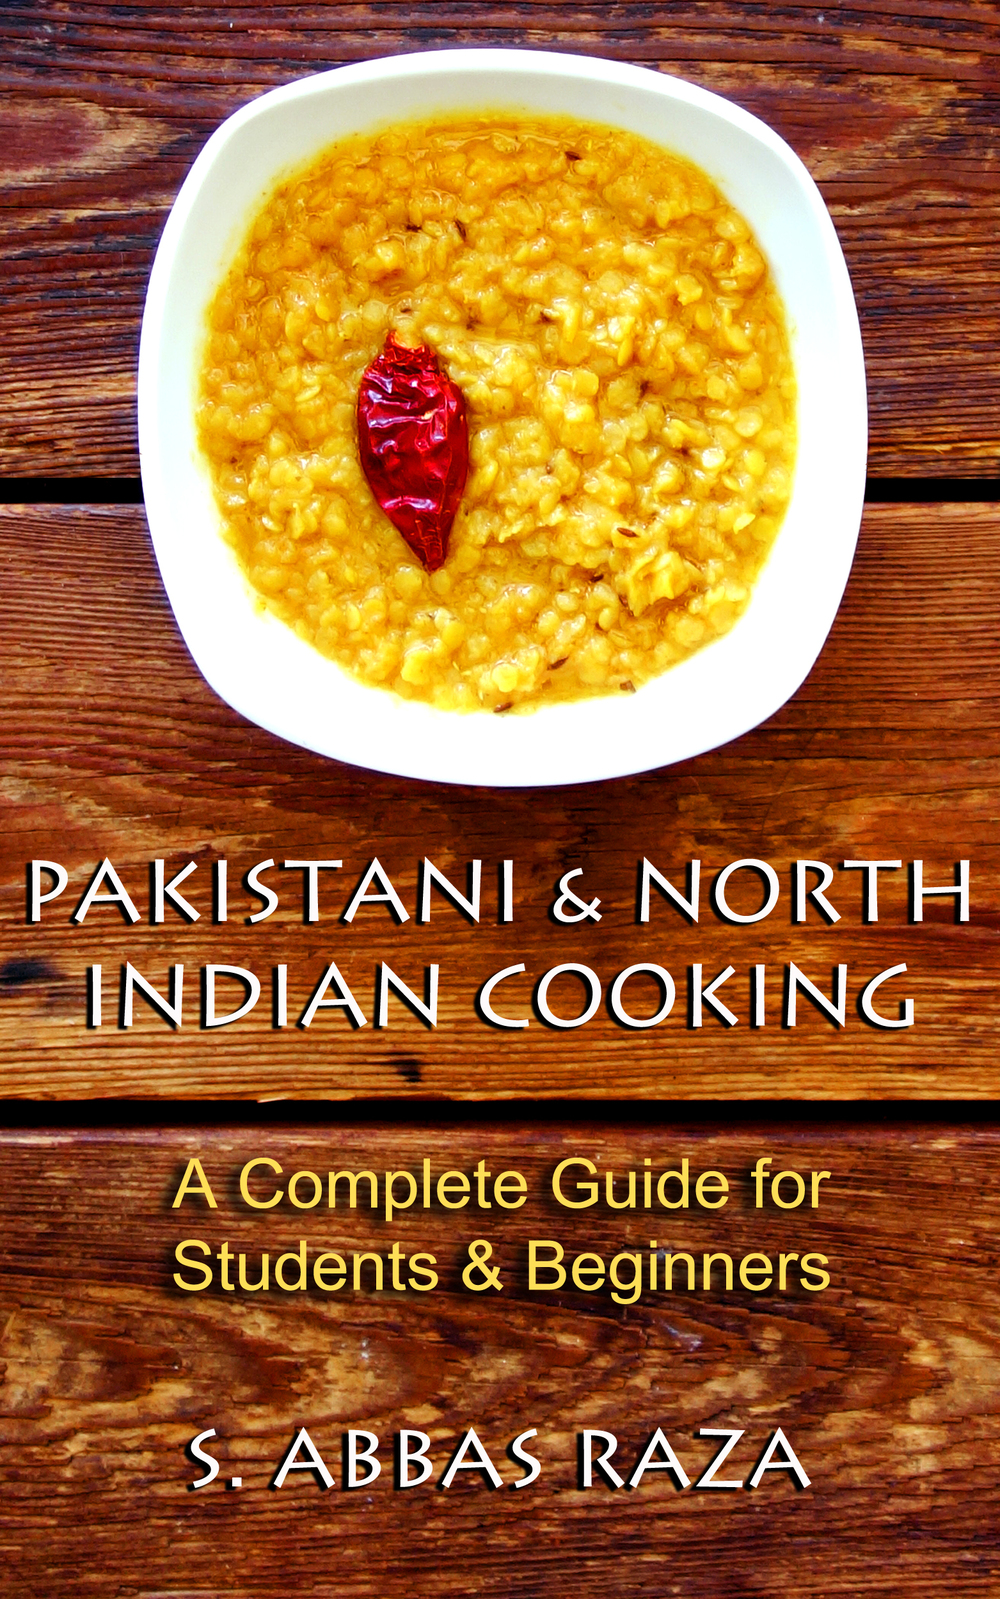 Pakistan-India-Cookbook-Cover.jpg